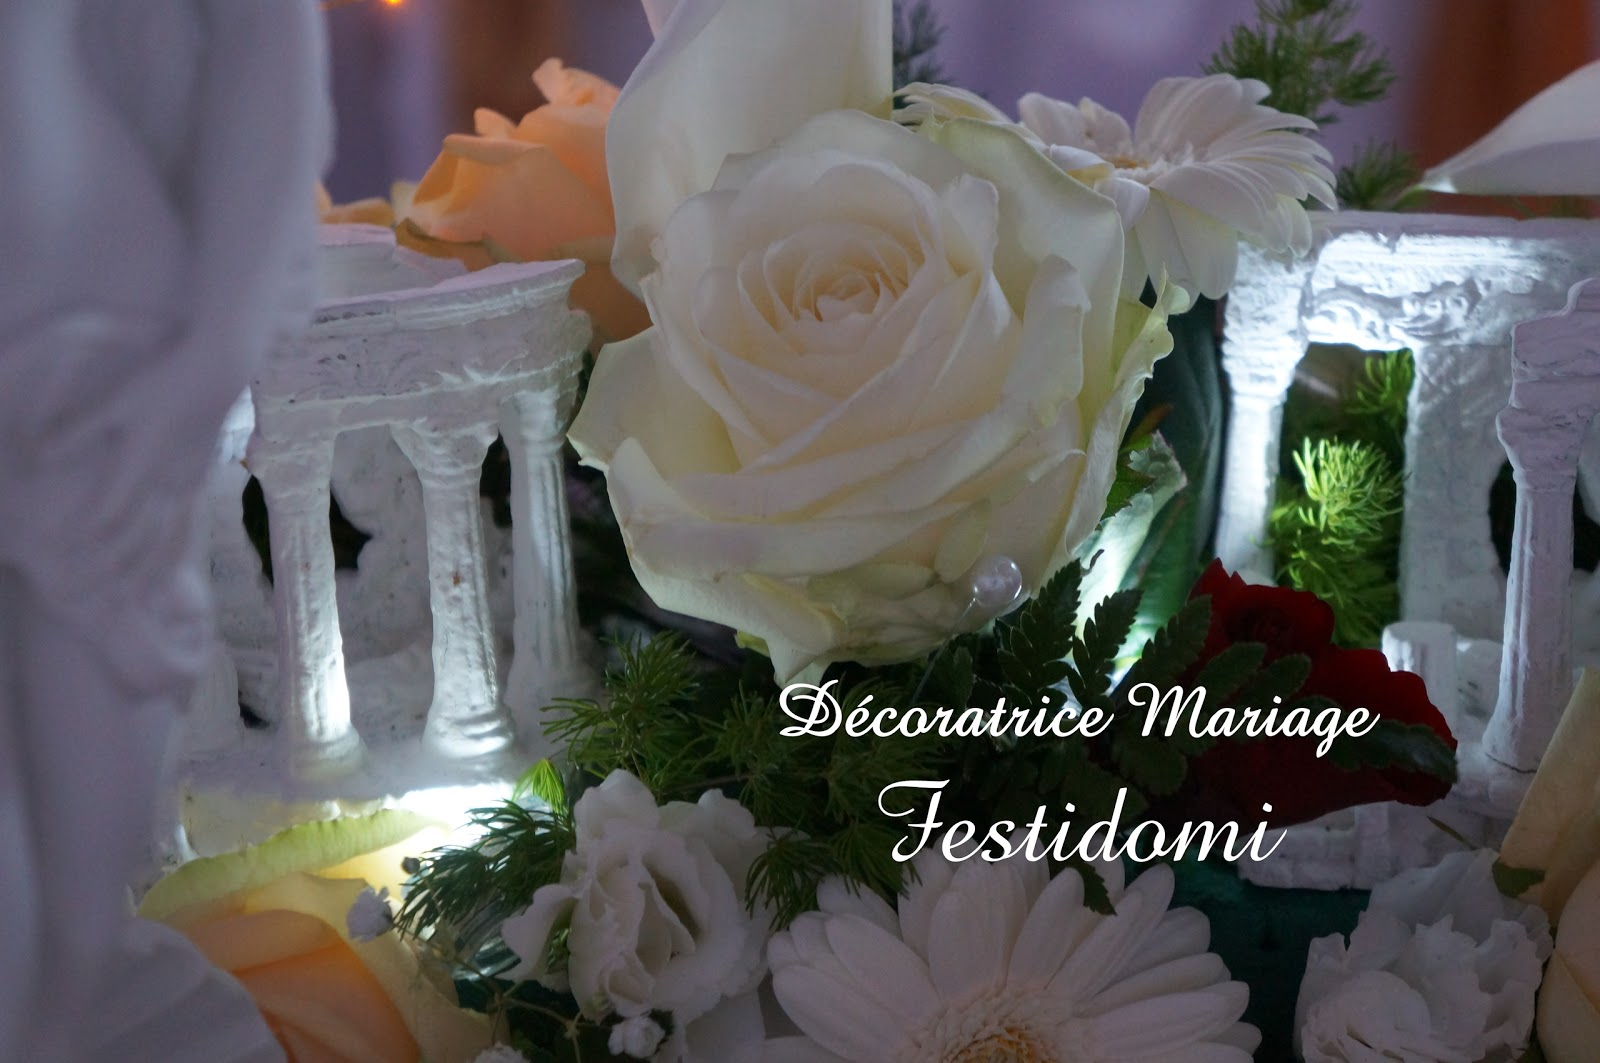 Theme+mariage,+mariage+theme+grece+antique,+décoratrice+mariage ...